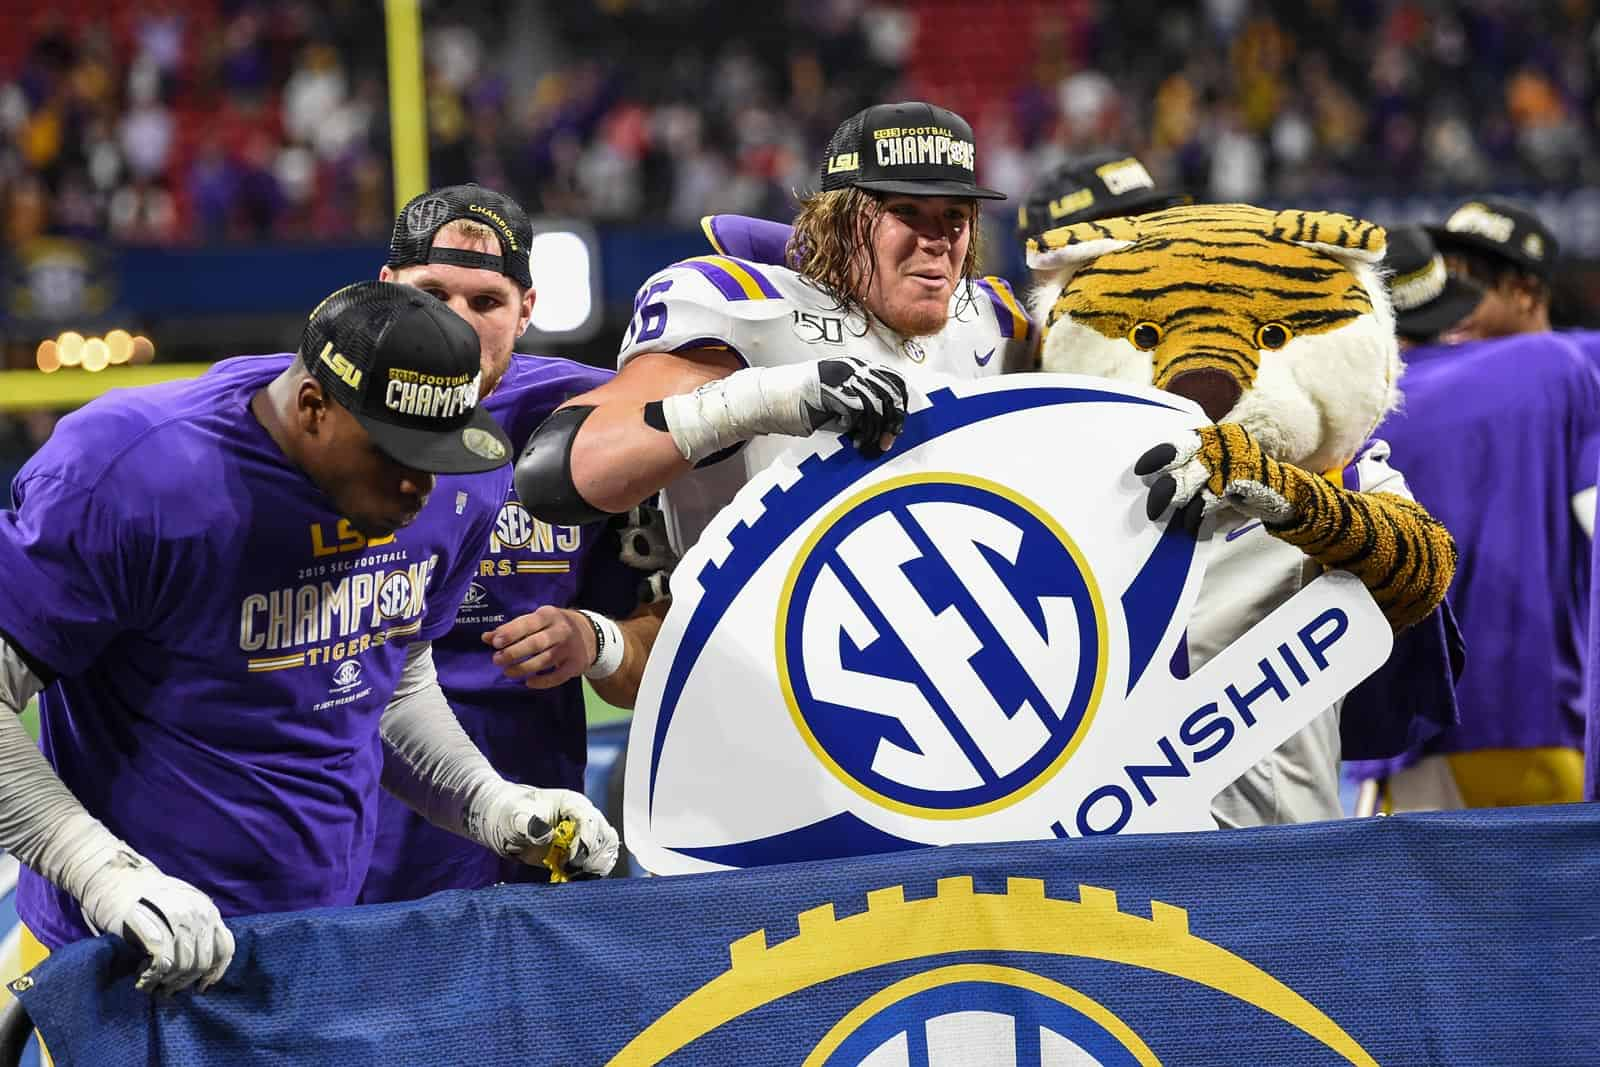 SEC announces fan health, safety guidelines for football season